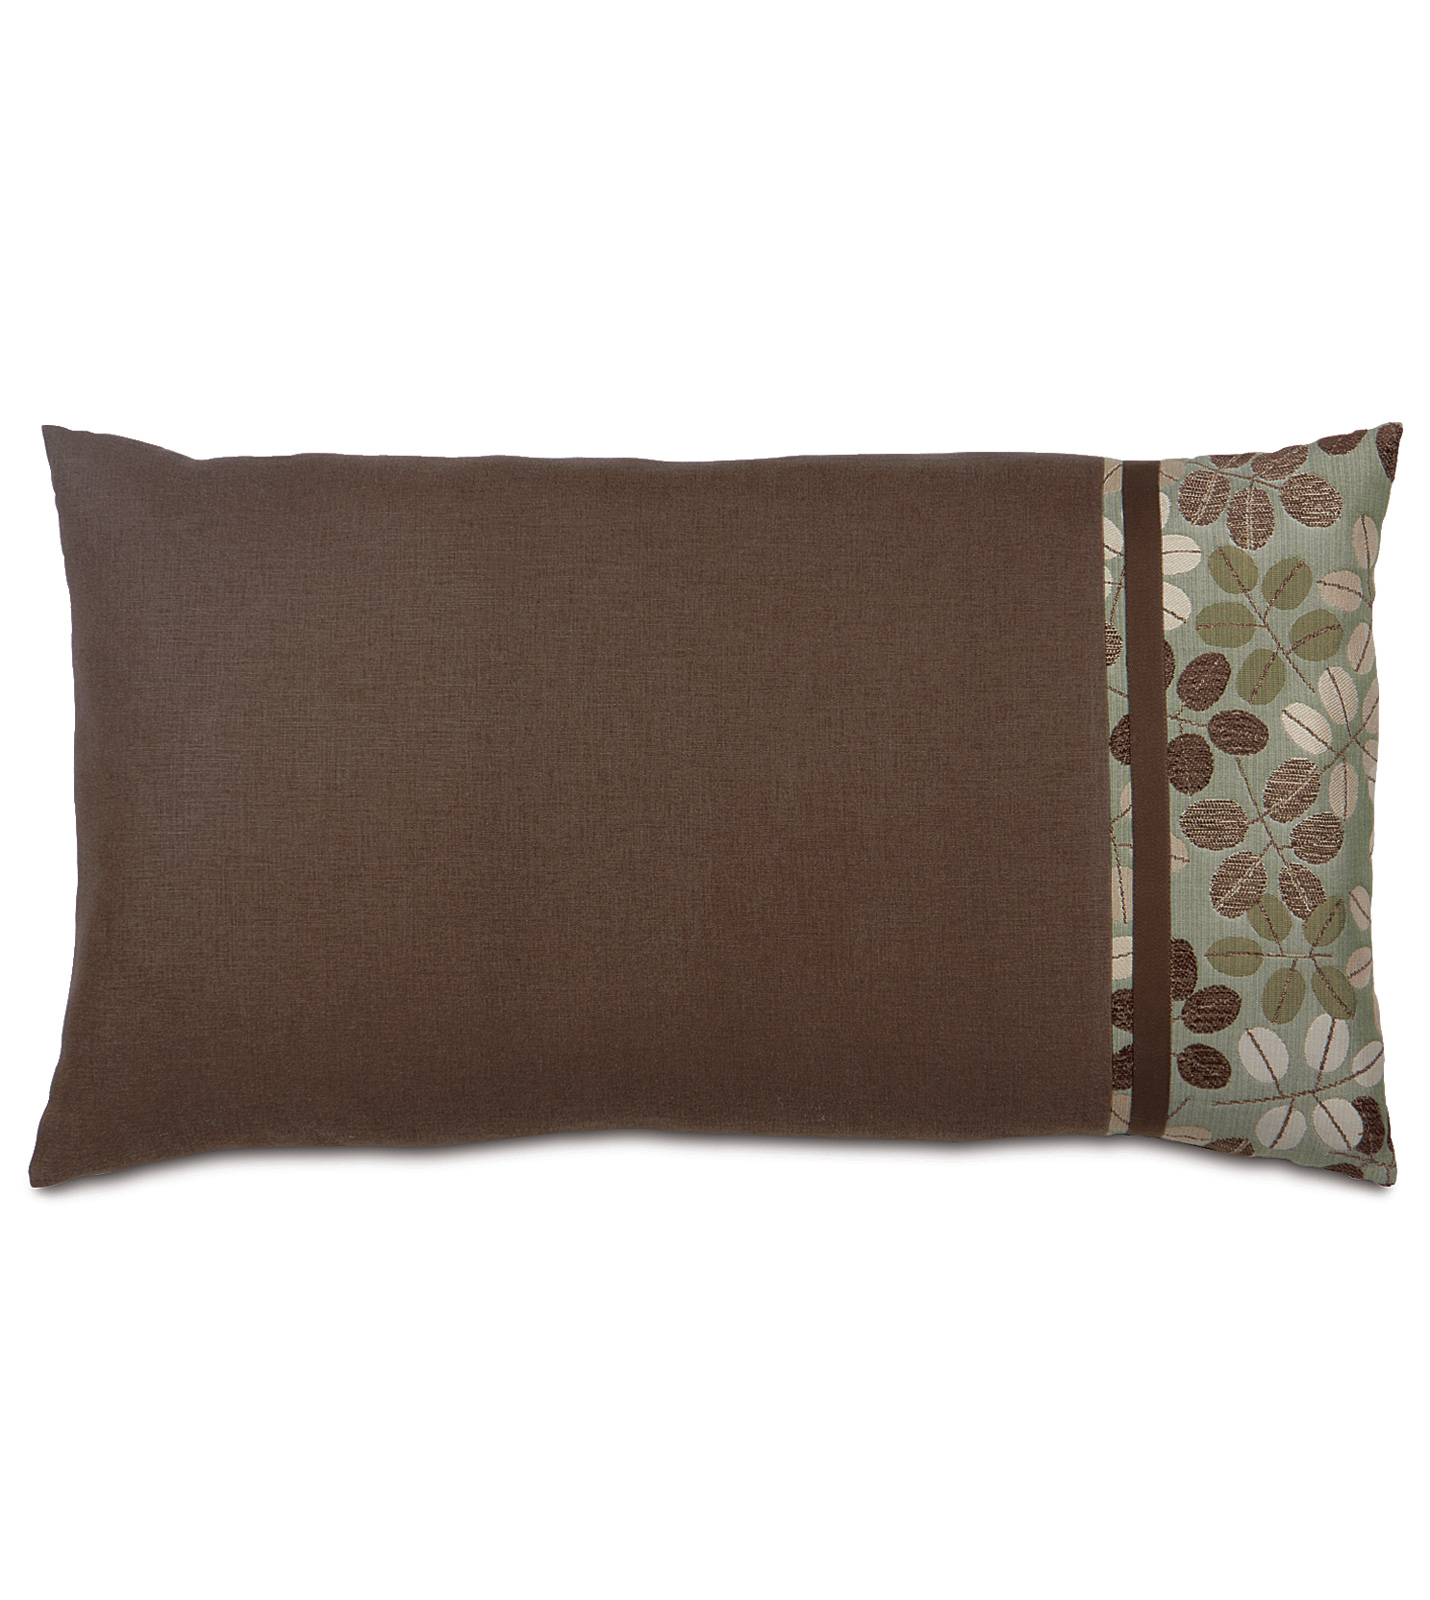 Decorative King Pillow Shams : Niche Luxury Bedding by Eastern Accents - LEON CHESTNUT KING SHAM RIGHT